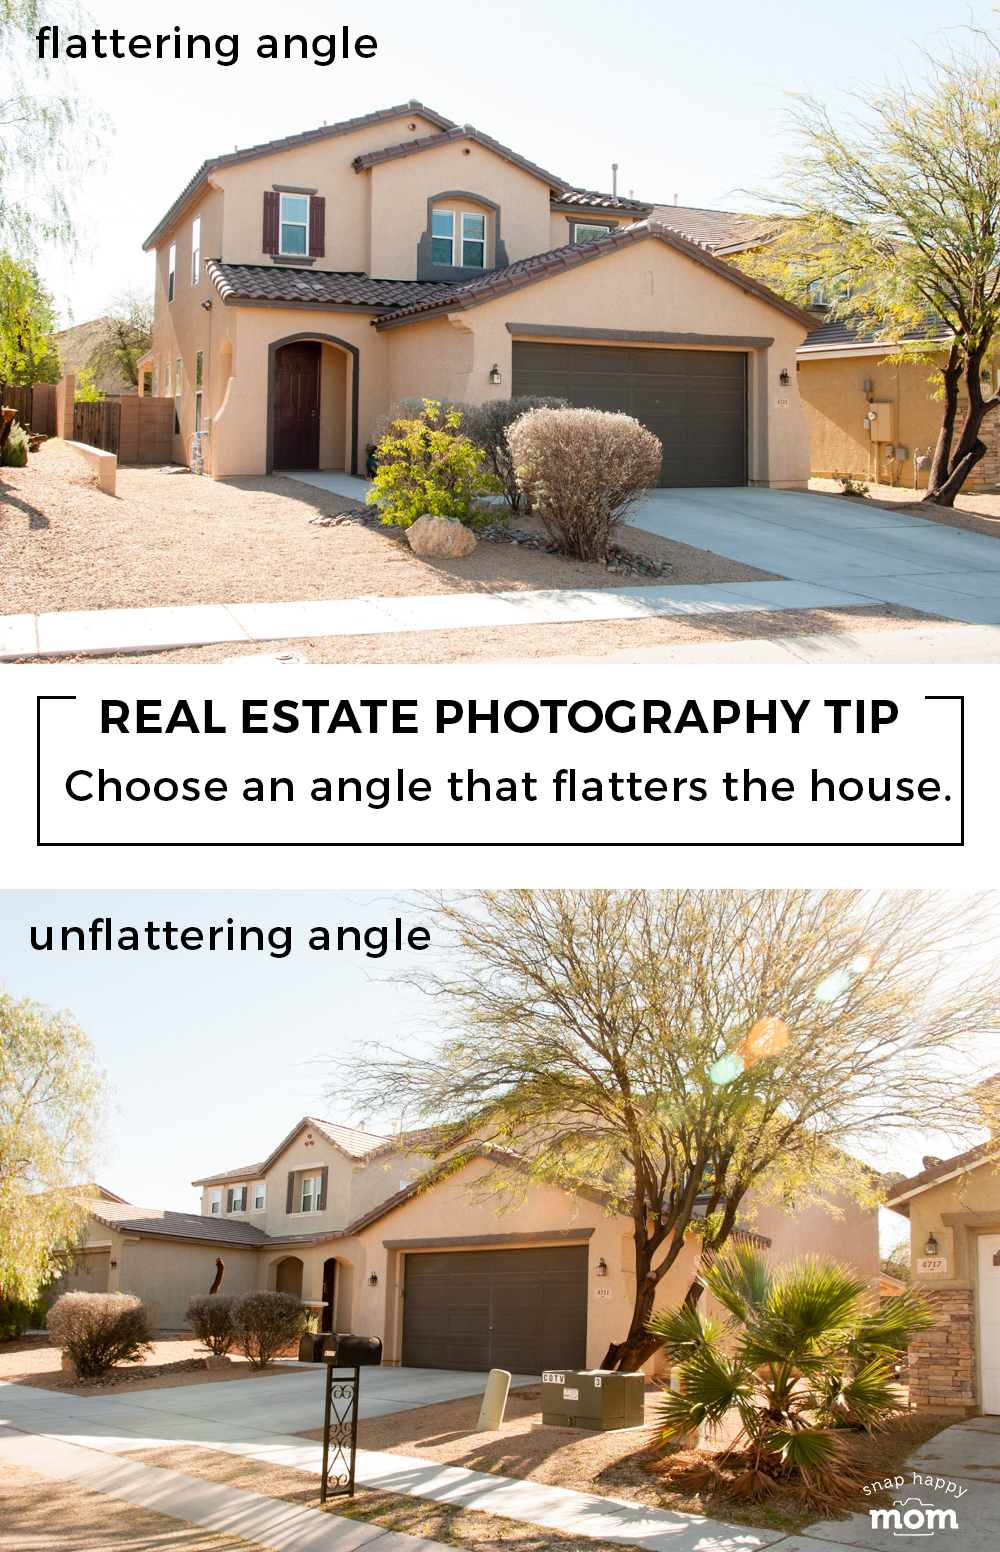 Tips for taking your own real estate photos: Choose an angle that flatters the house